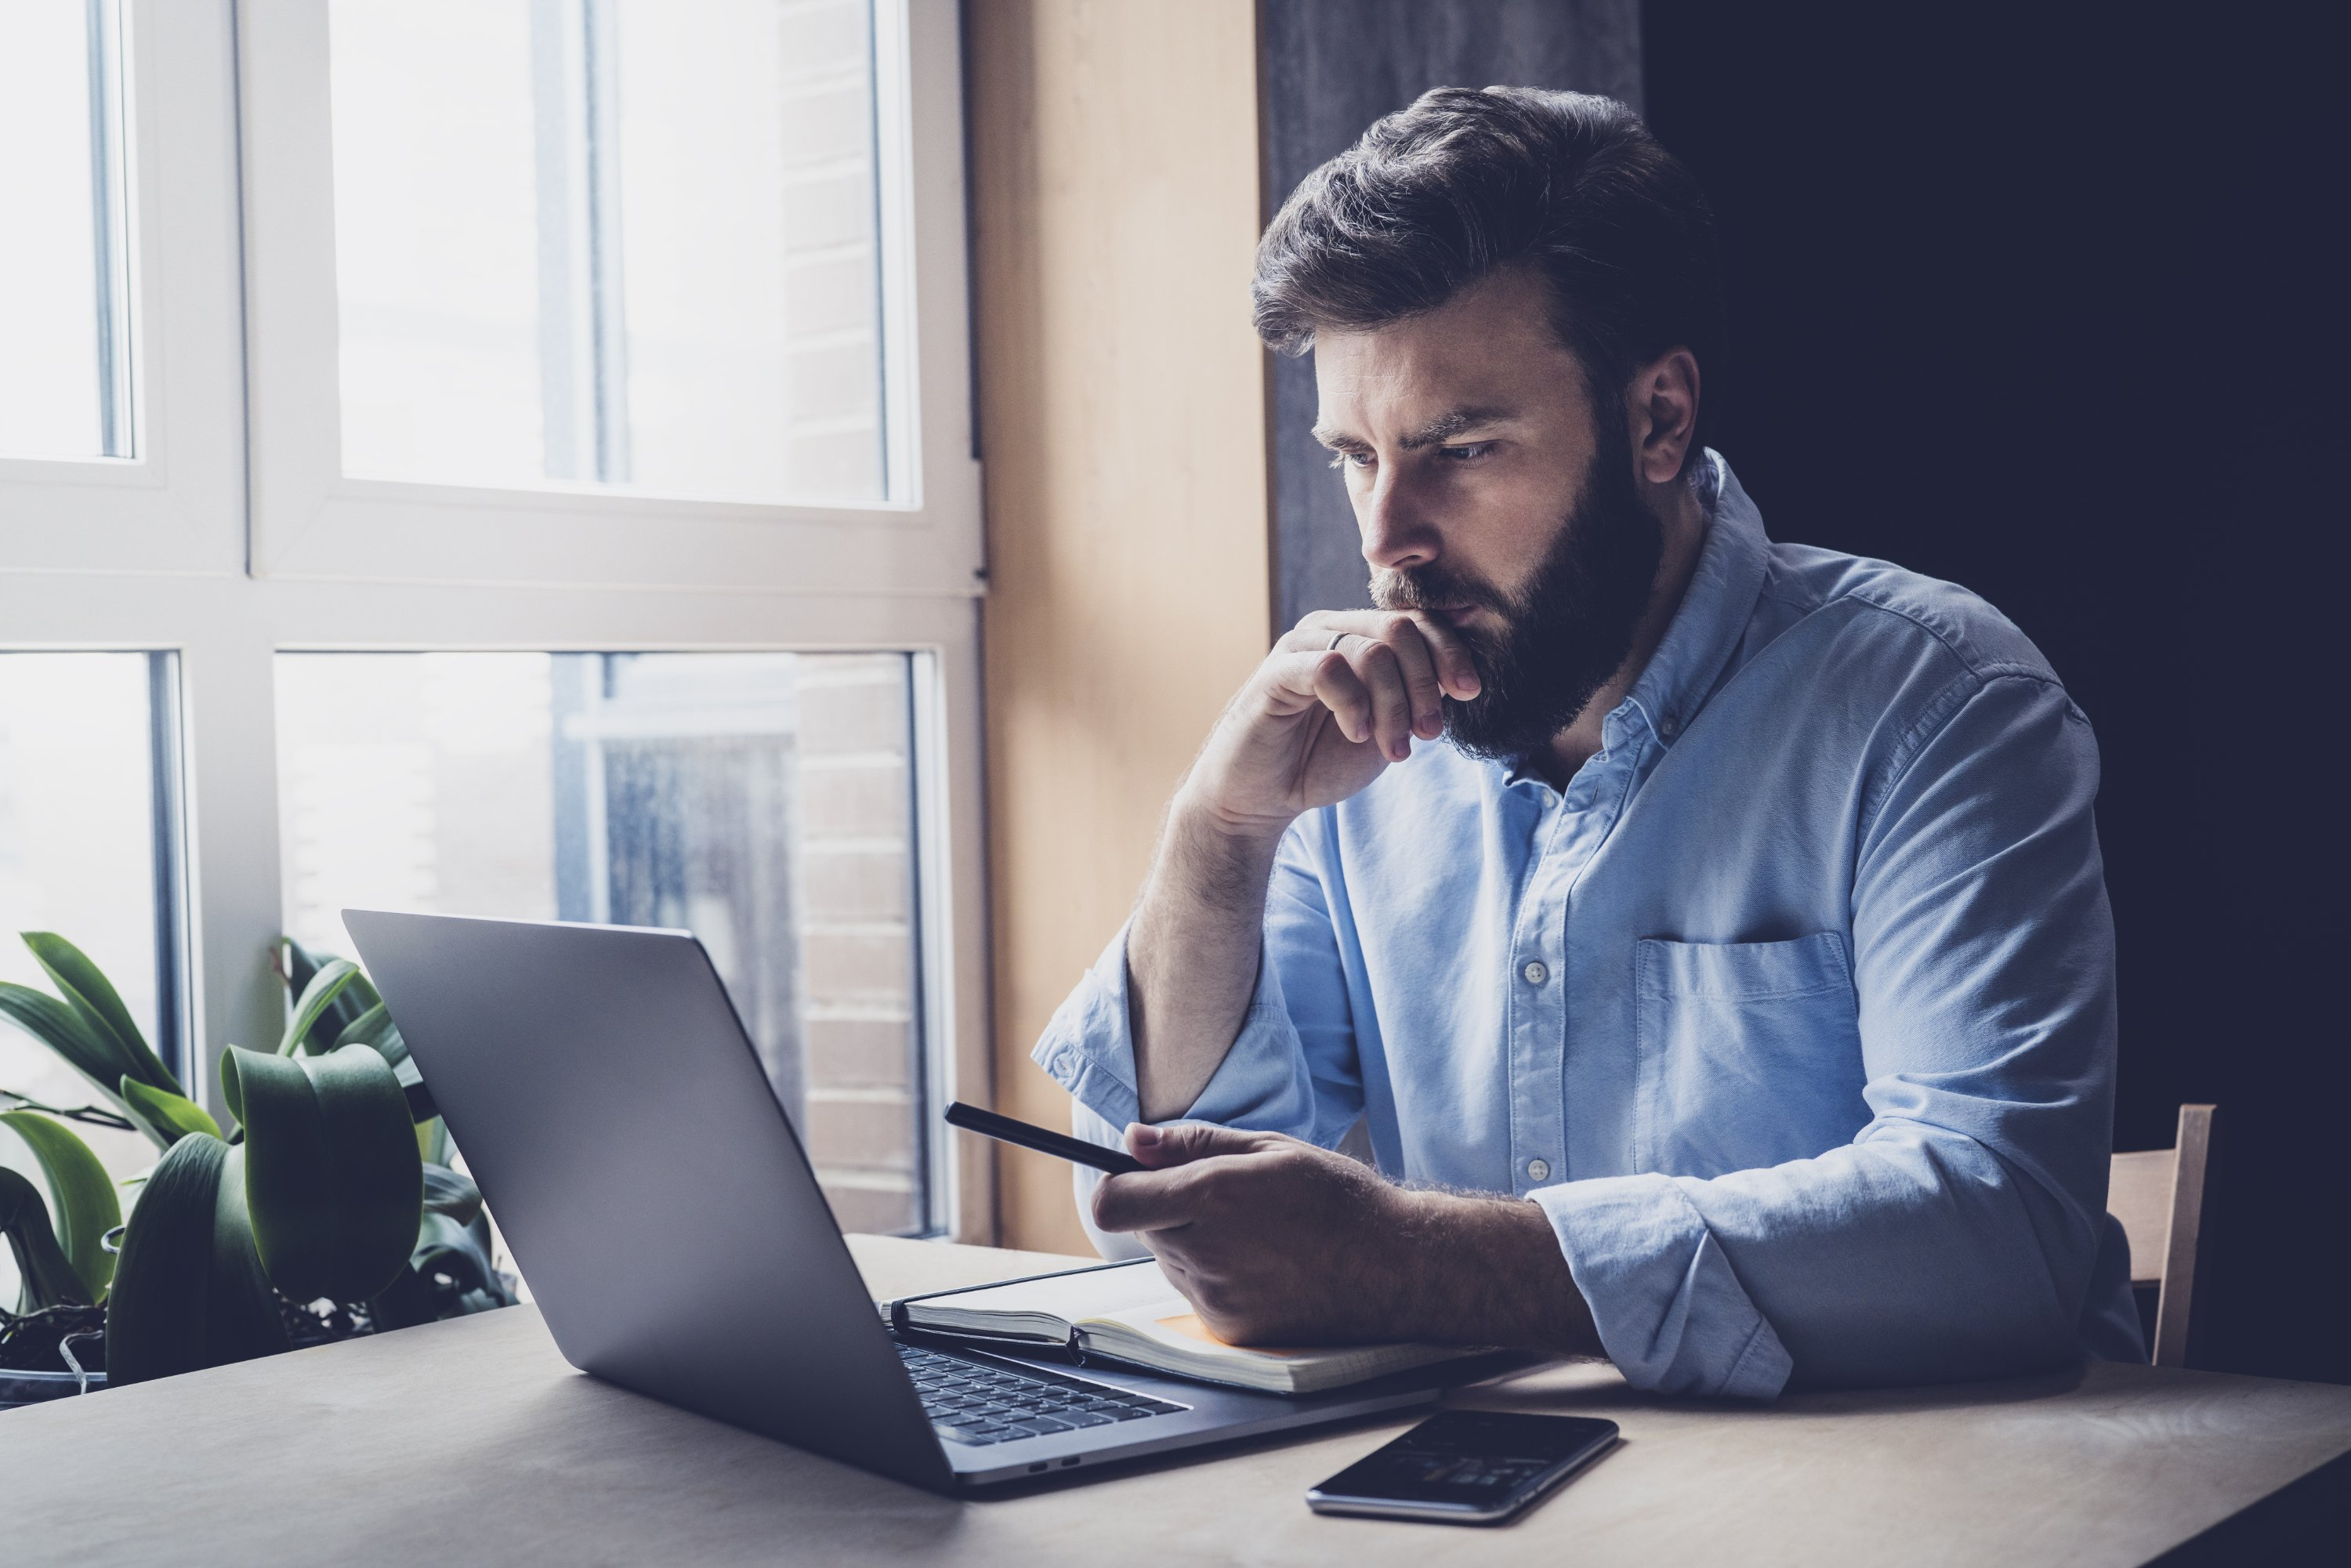 Does Having a Beard Lower Your Chances of Landing a Job?